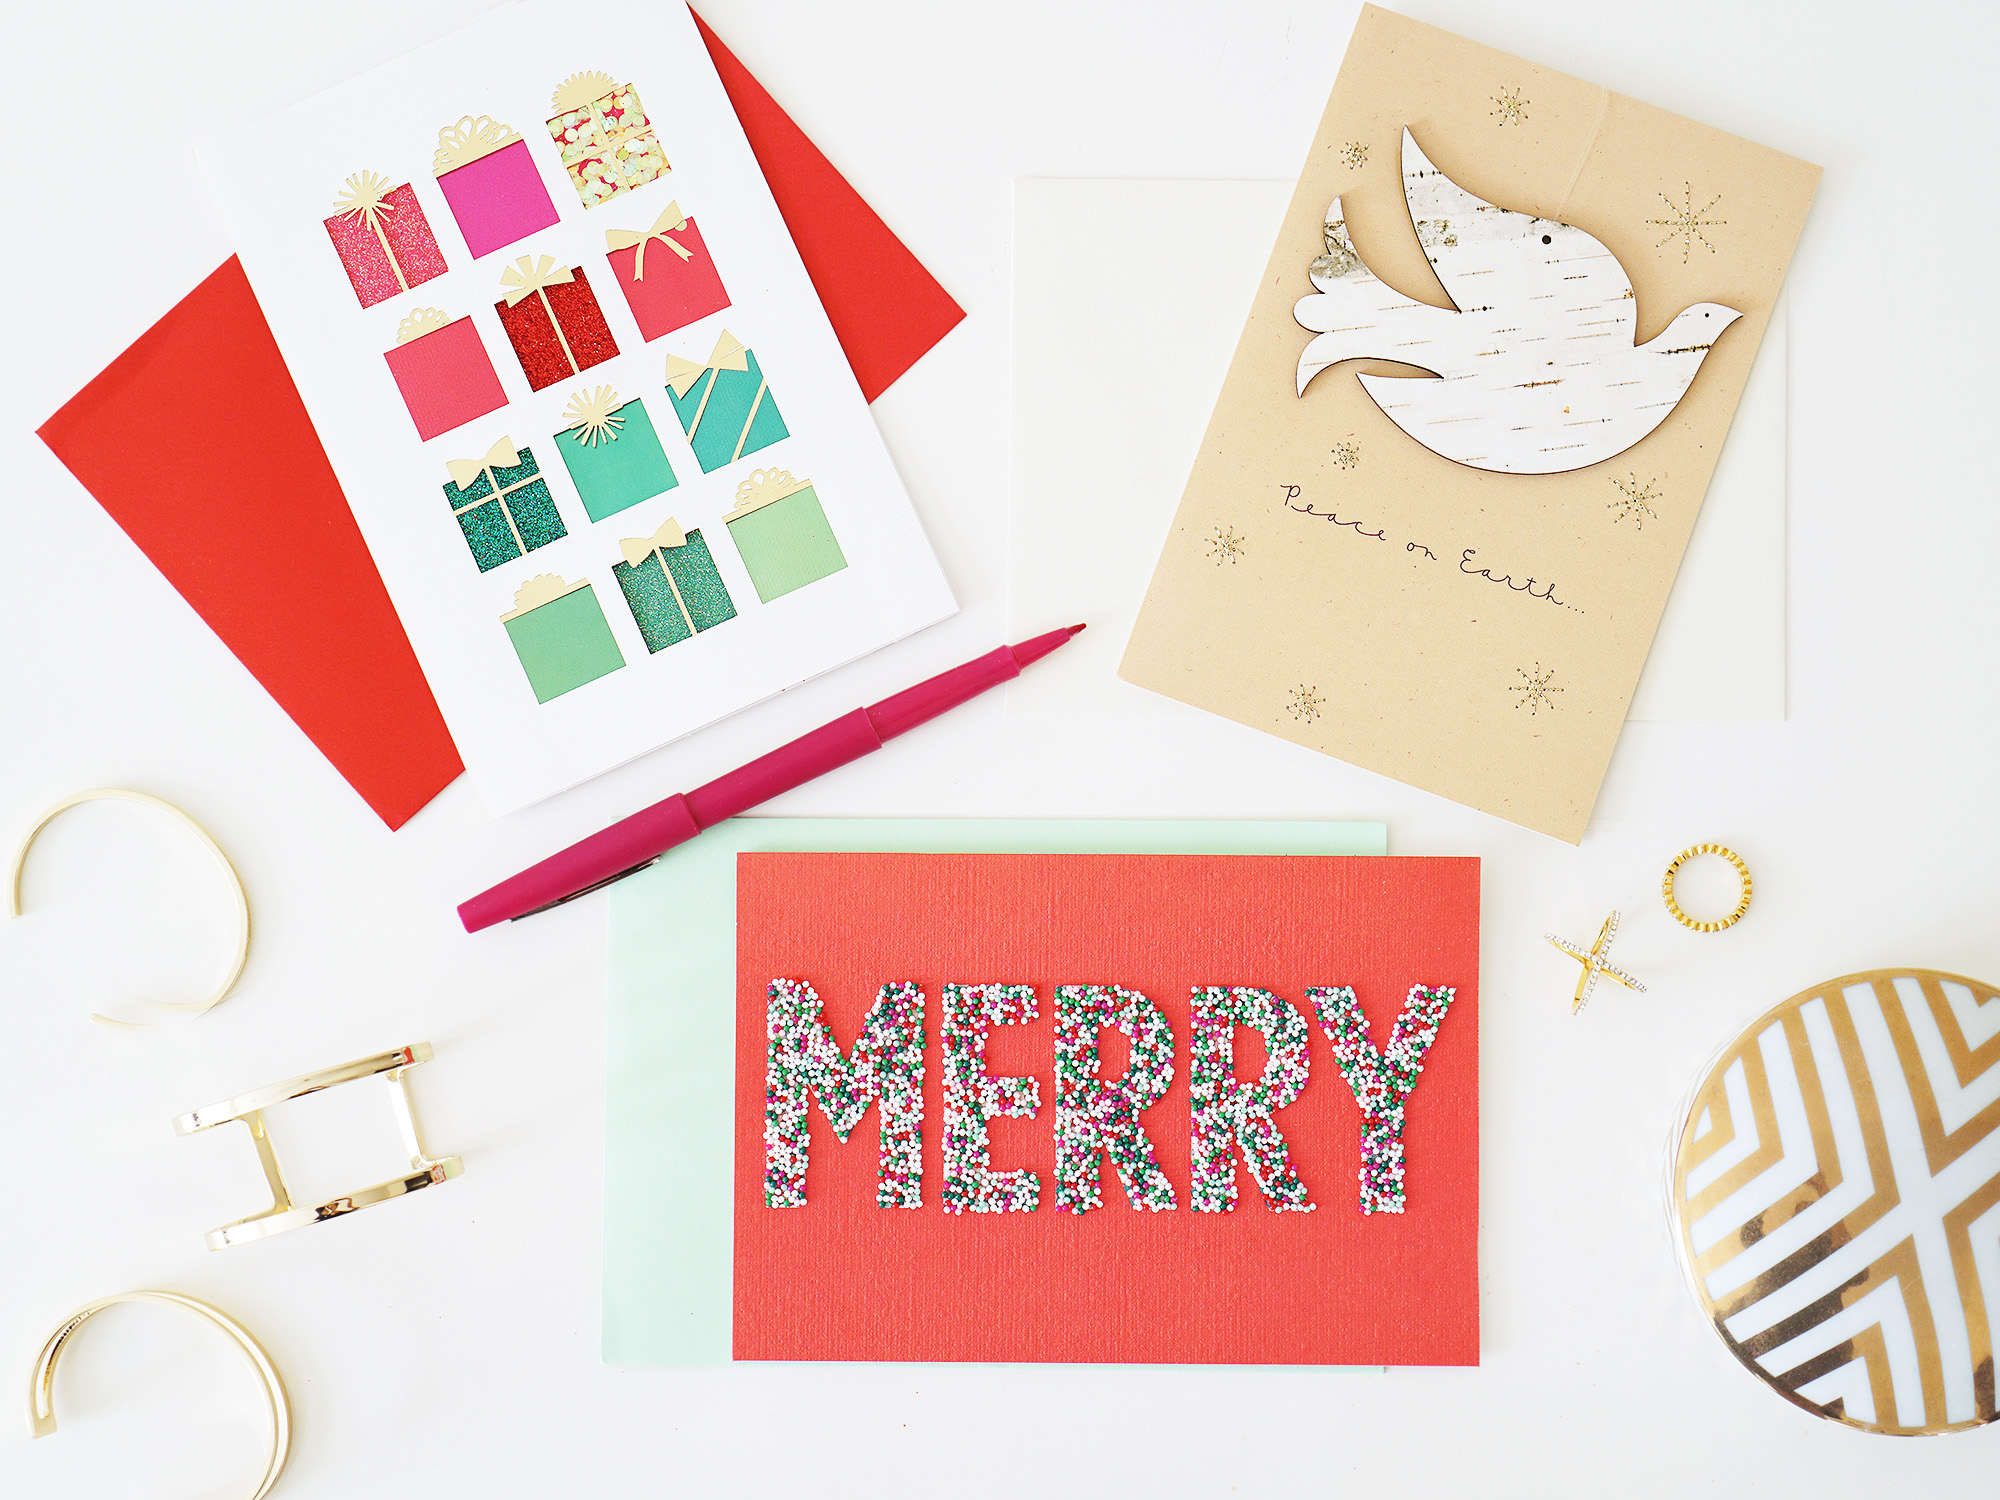 skirt-the-rules-hallmark-signature-holiday-cards-1